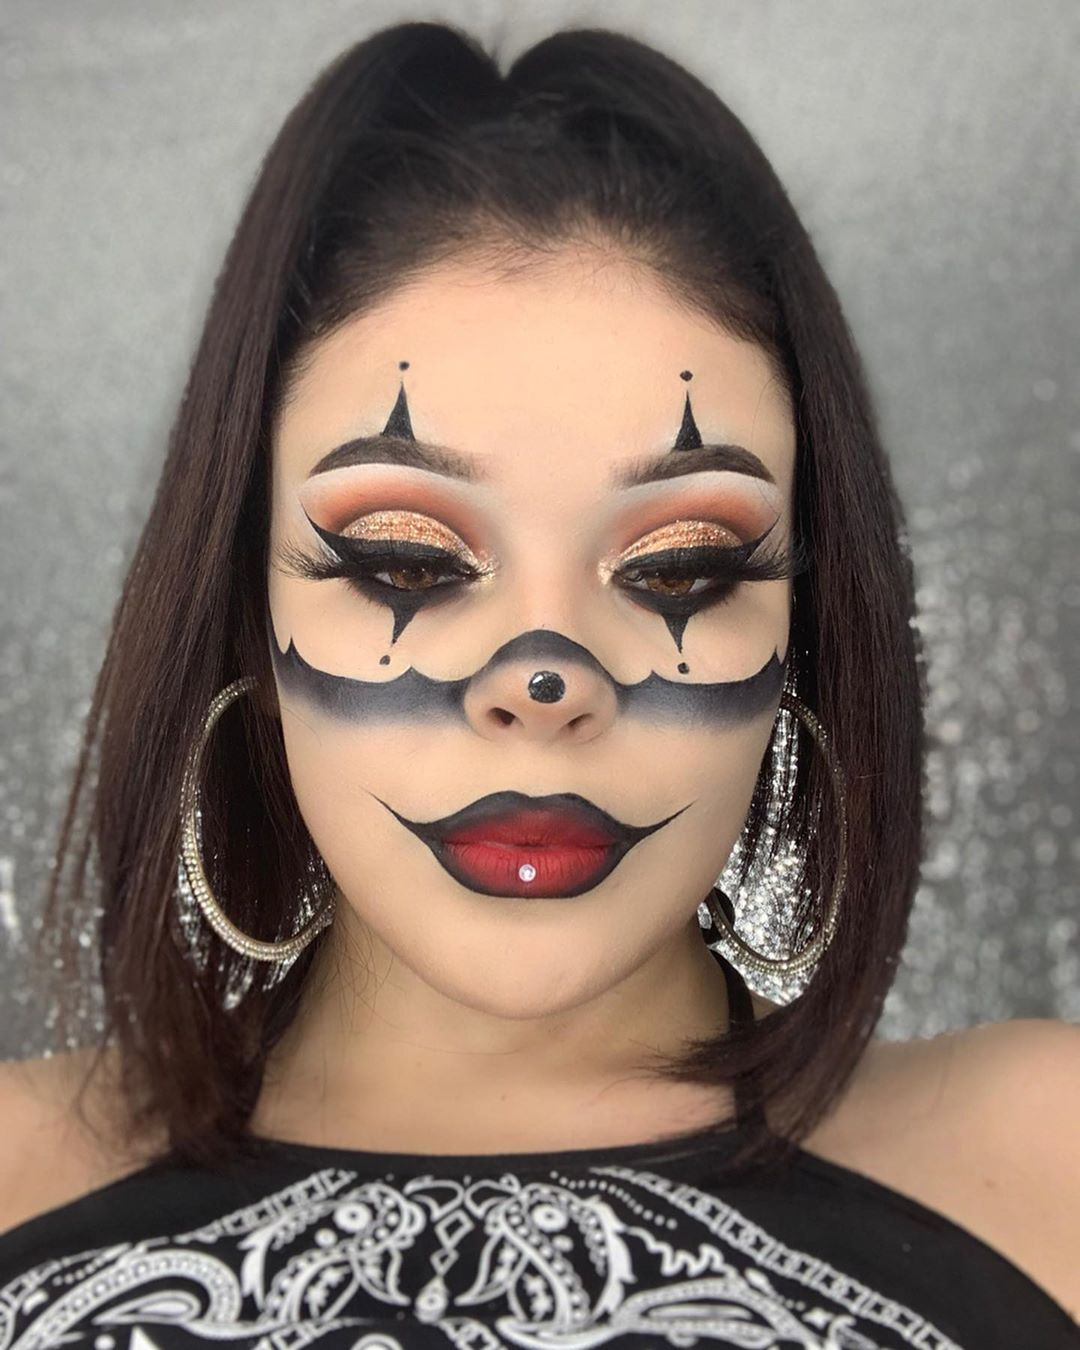 """𝐂𝐞𝐥𝐞𝐬𝐭𝐞 𝐃𝐞𝐥 𝐑𝐢𝐨 🦋🙏🏻 on Instagram """"Look2 🖤💋 Did a poll to"""